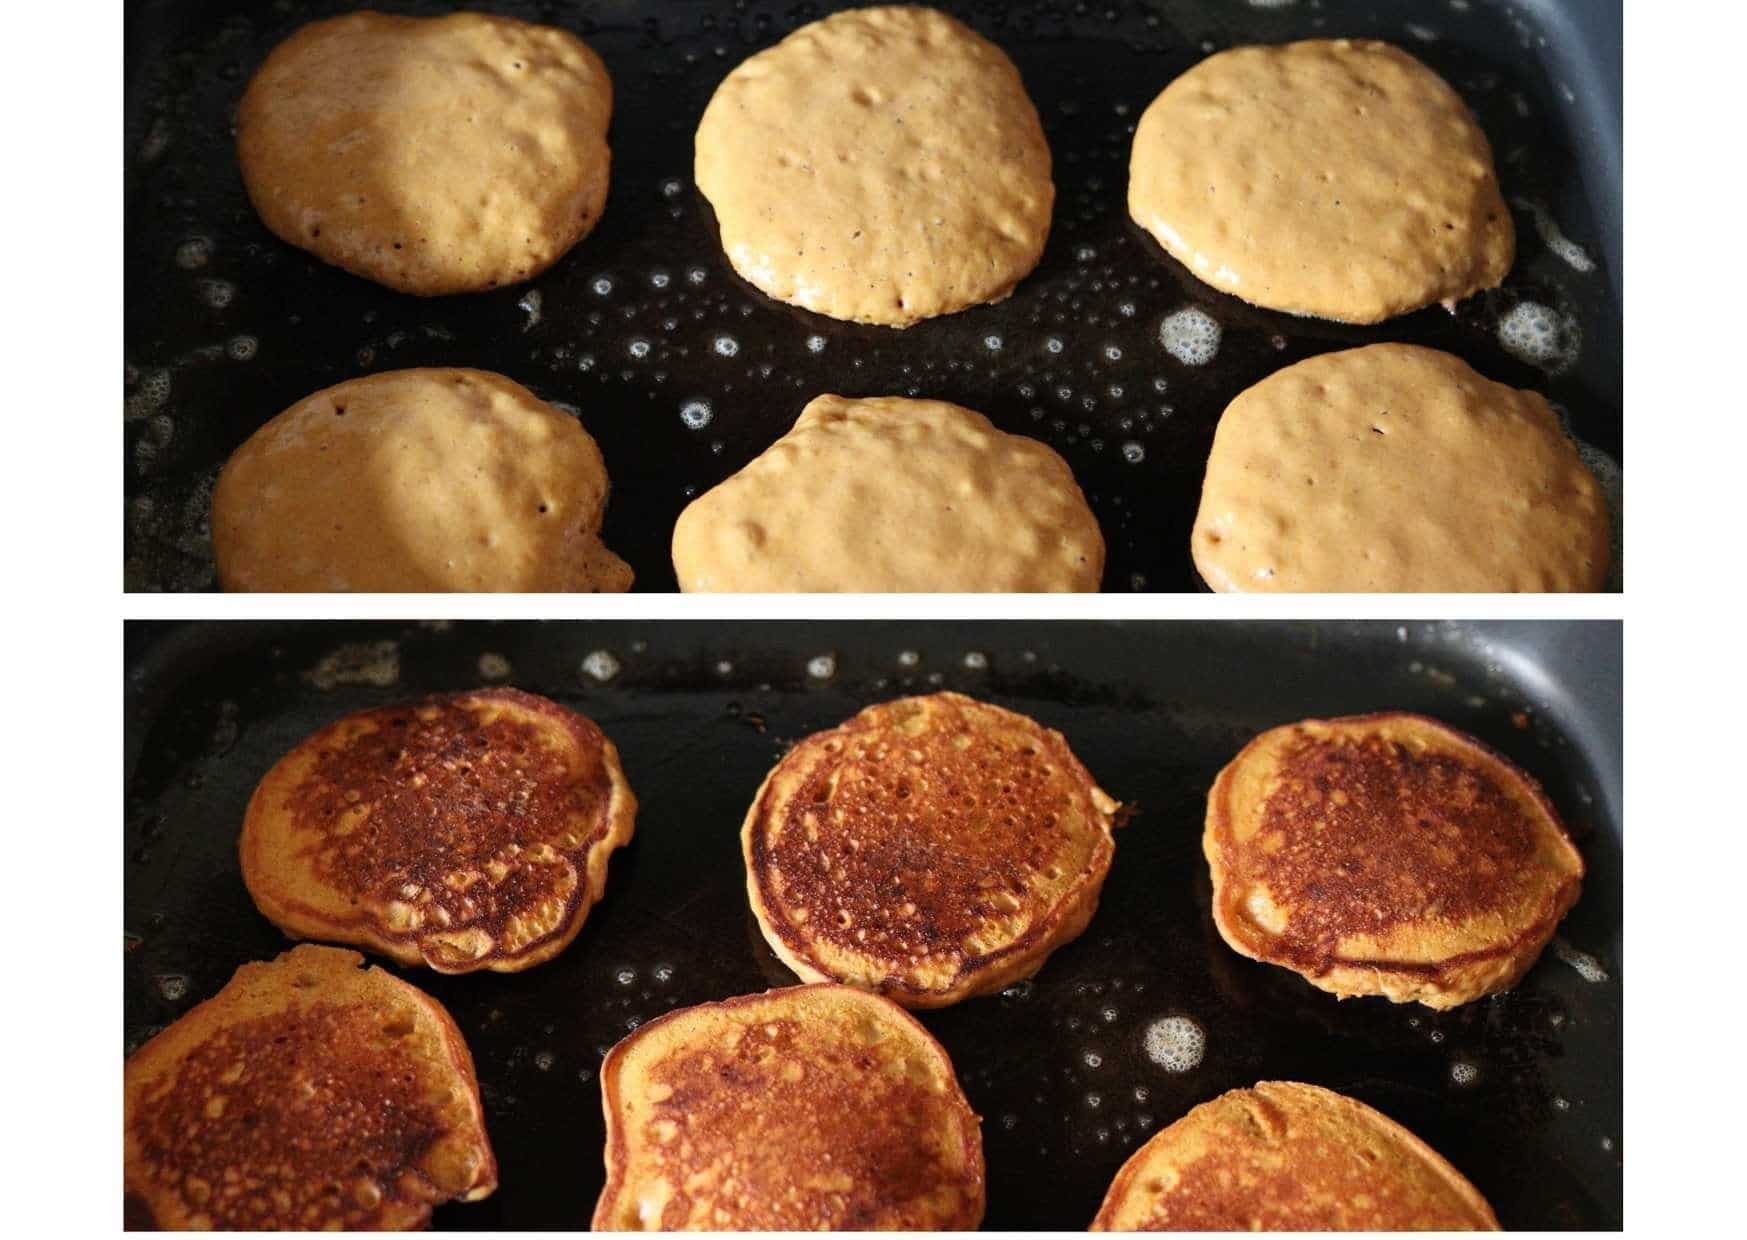 before and after flipping pancakes on the griddle